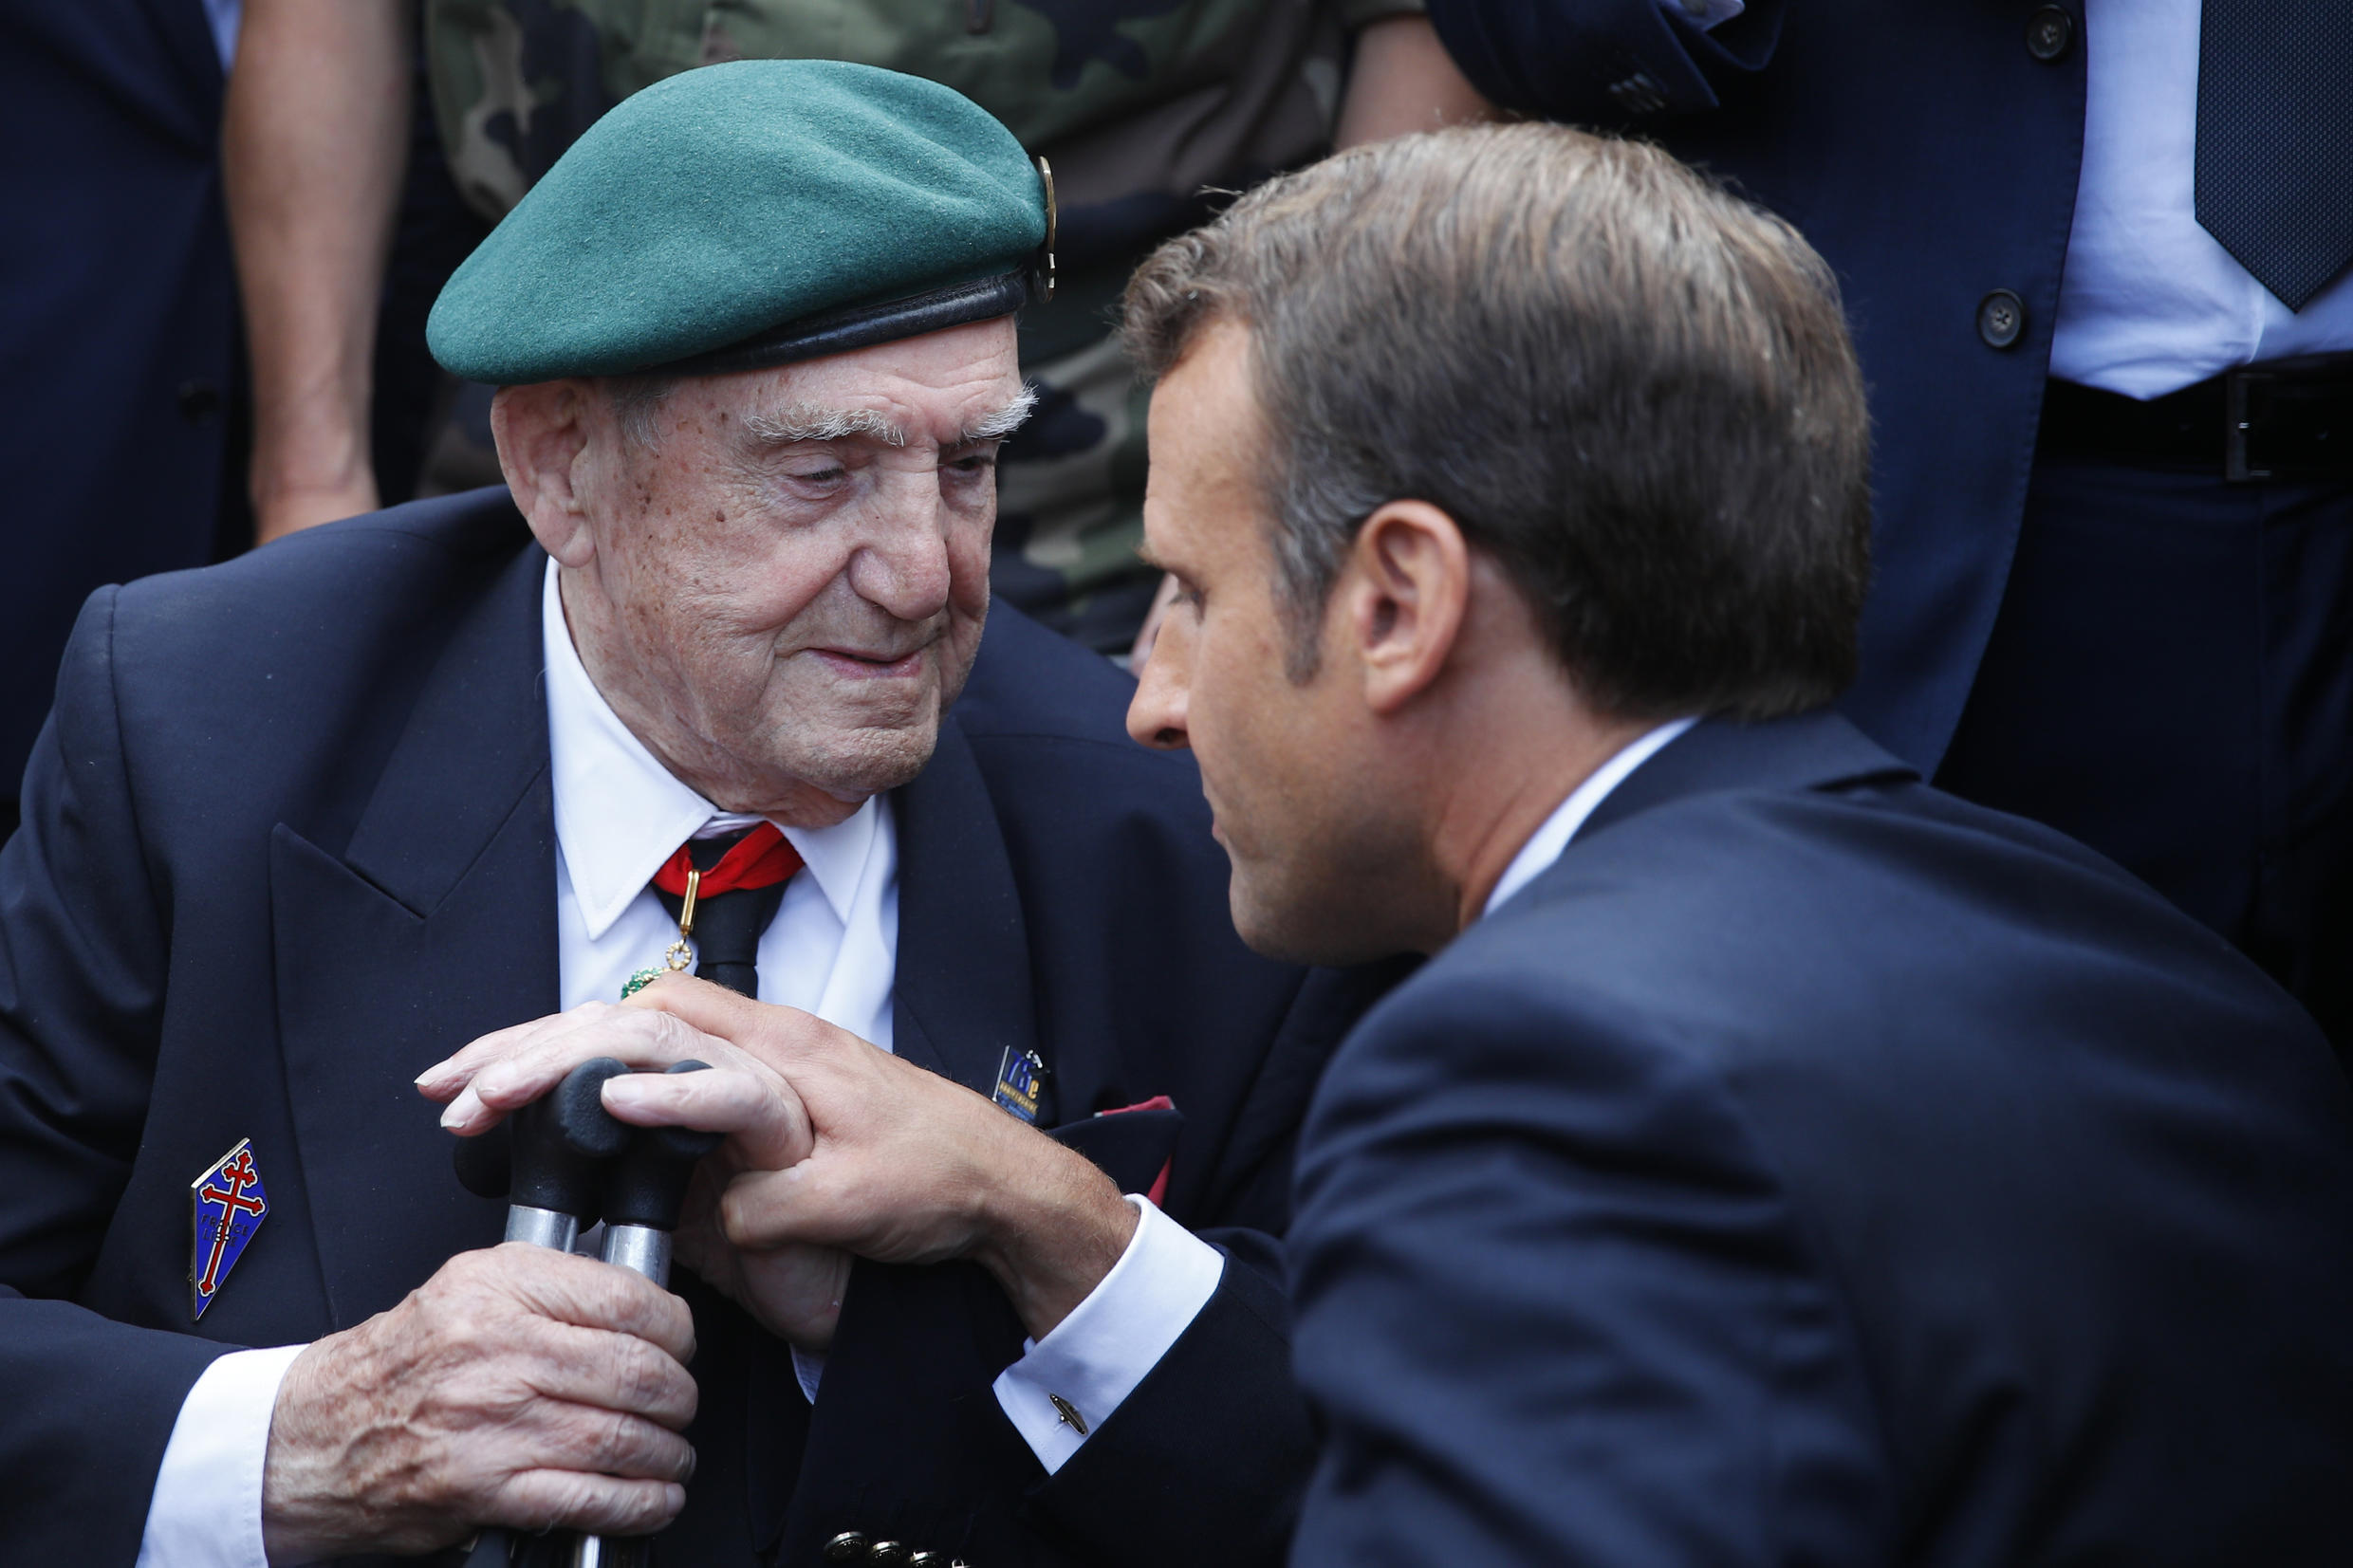 President Macron talks to Leon Gautier during a ceremony to pay homage to the Kieffer commando, Thursday, June 6, 2019 in Colleville-Montgomery, Normandy. The Kieffer commando, an elite French unit, was among the first waves of Allied troops to storm the heavily defended beaches of Nazi-occupied northern France, beginning the liberation of western Europe.